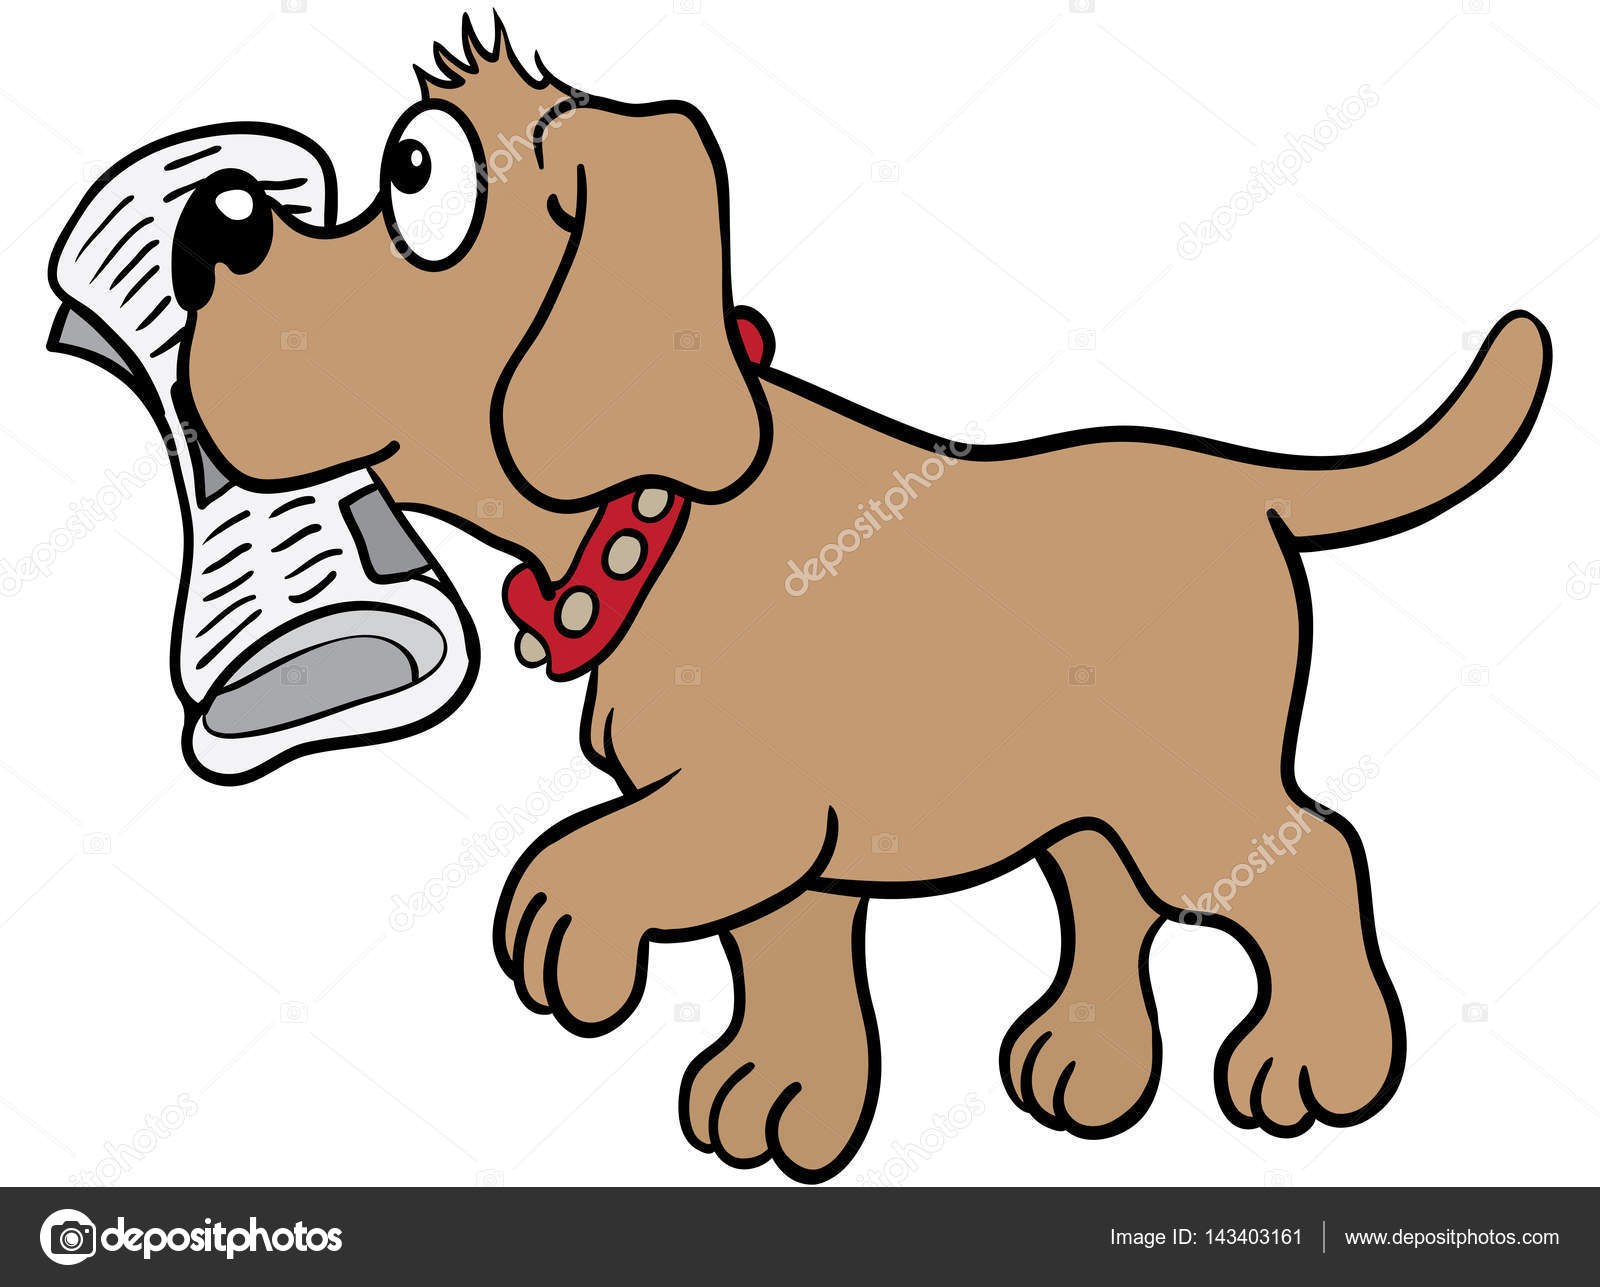 With free download best. Clipart dog newspaper